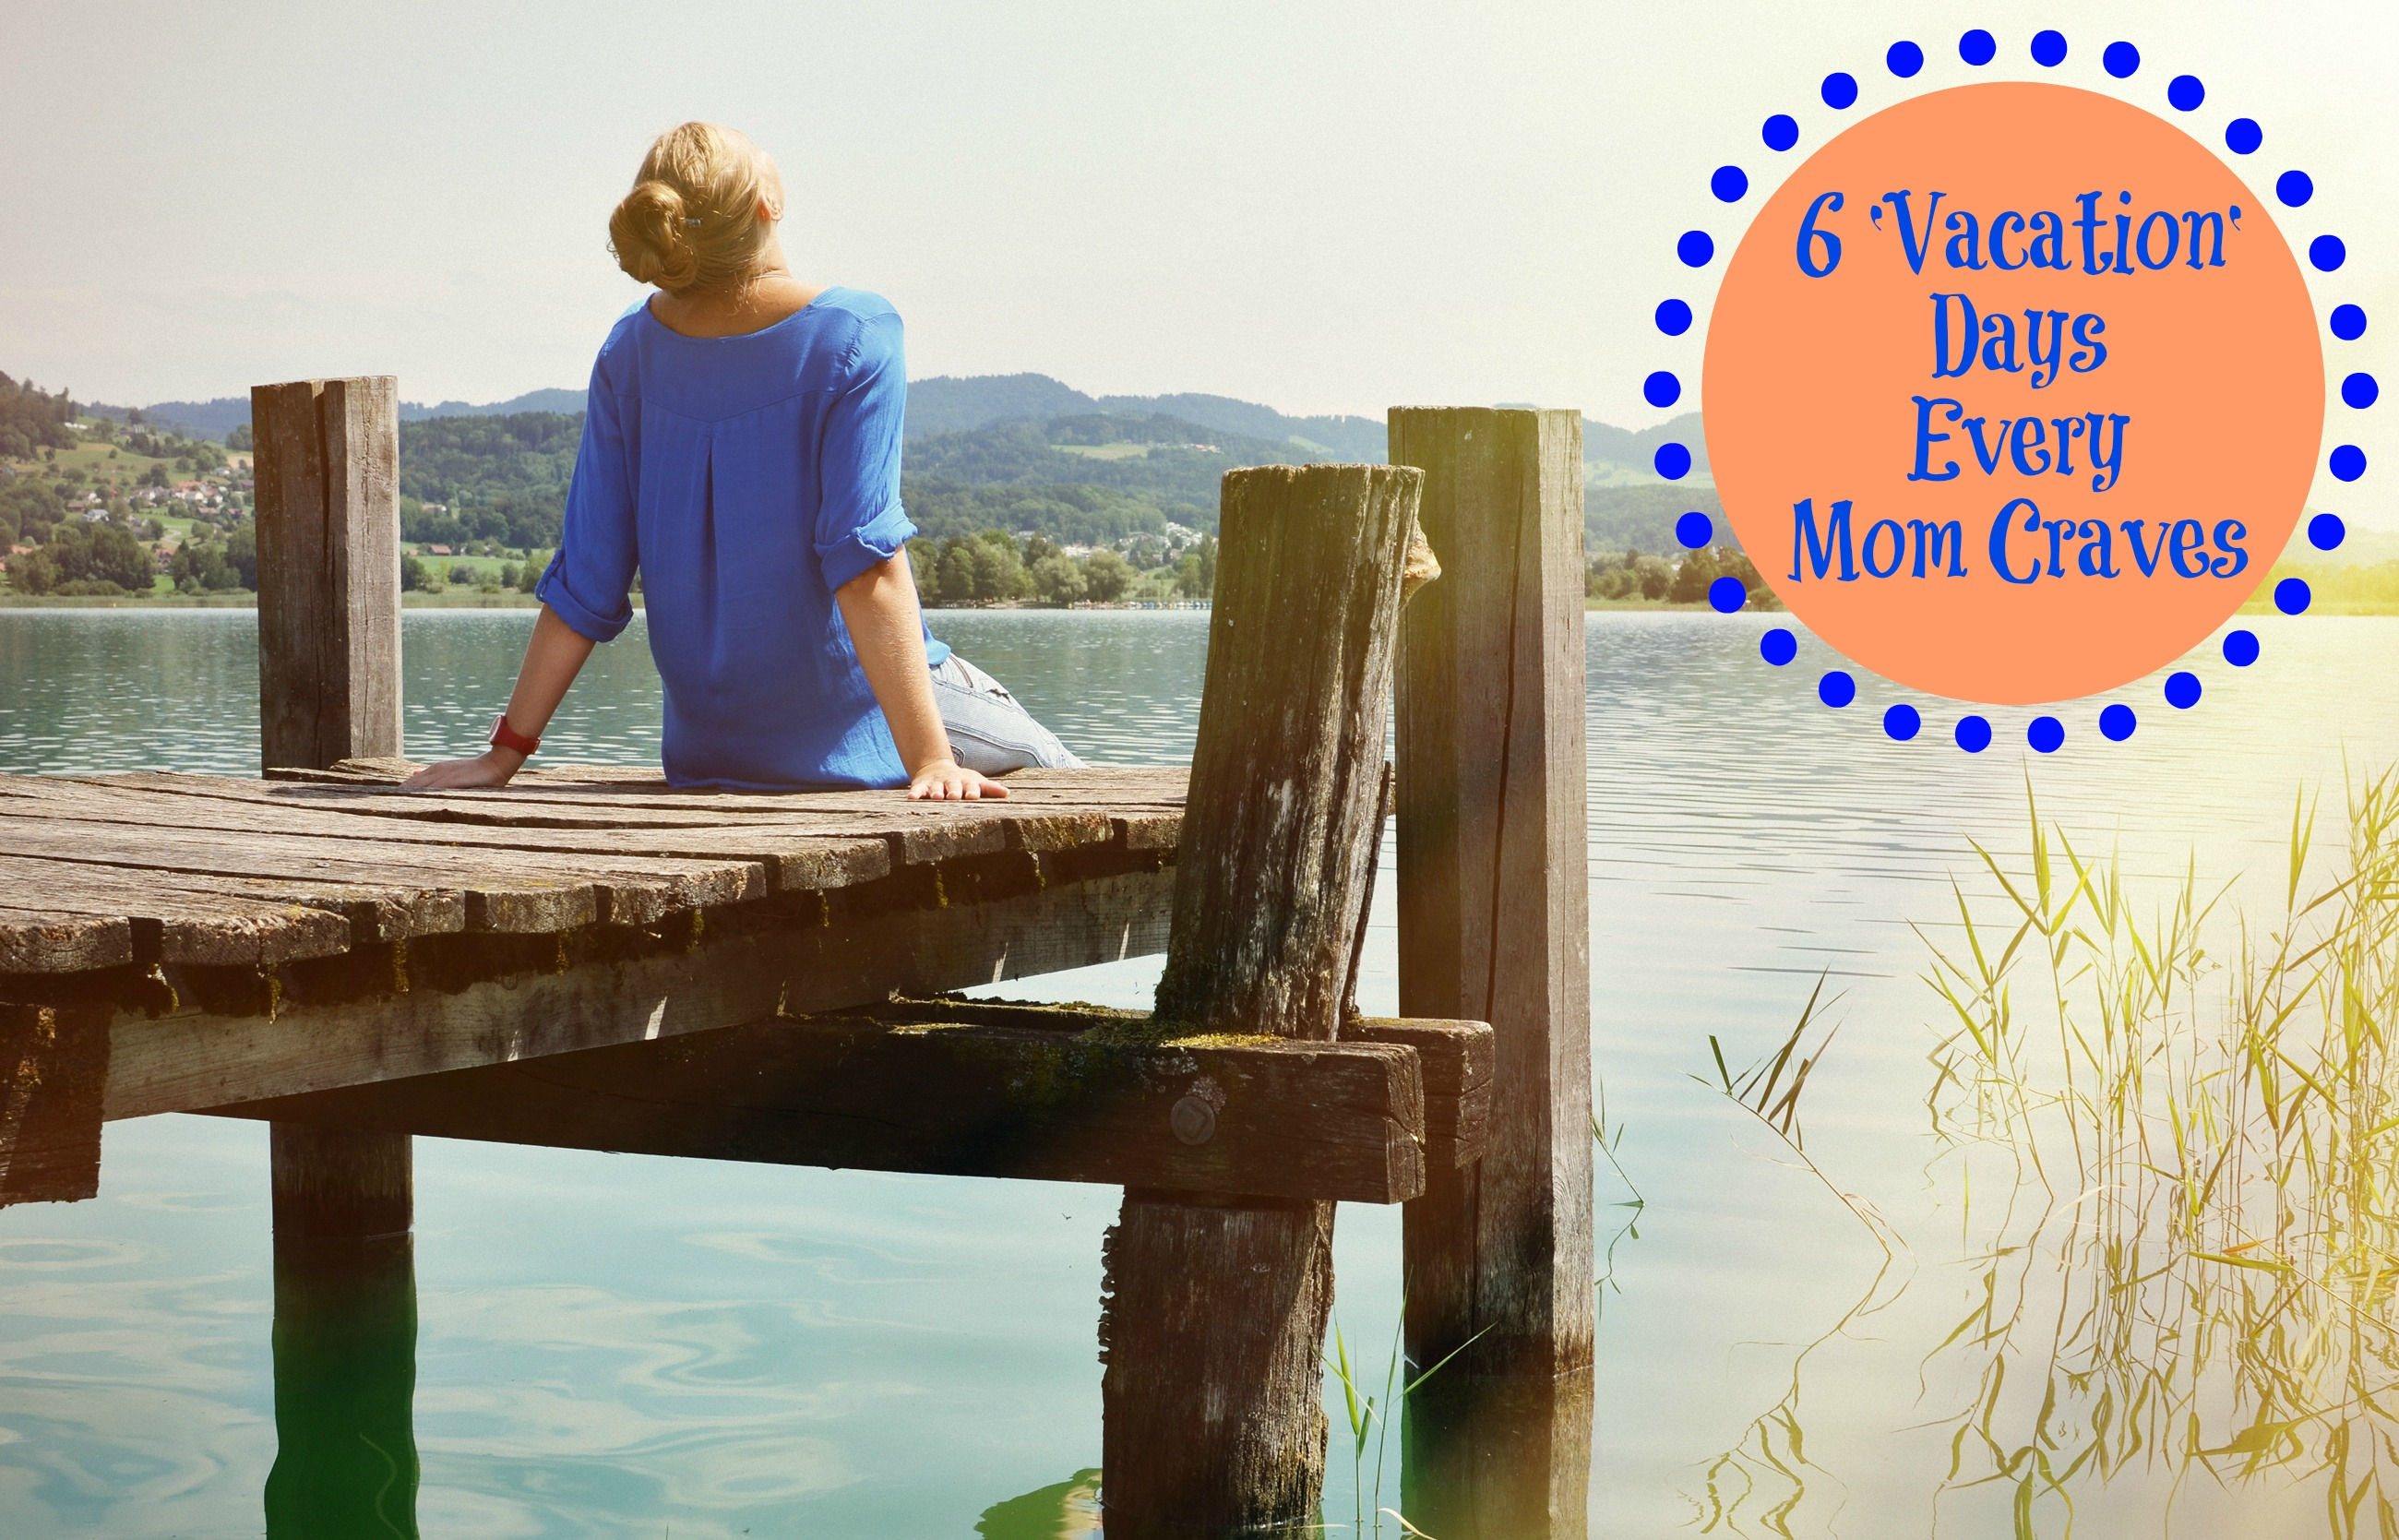 6 'Vacation' Days Every Mom Craves